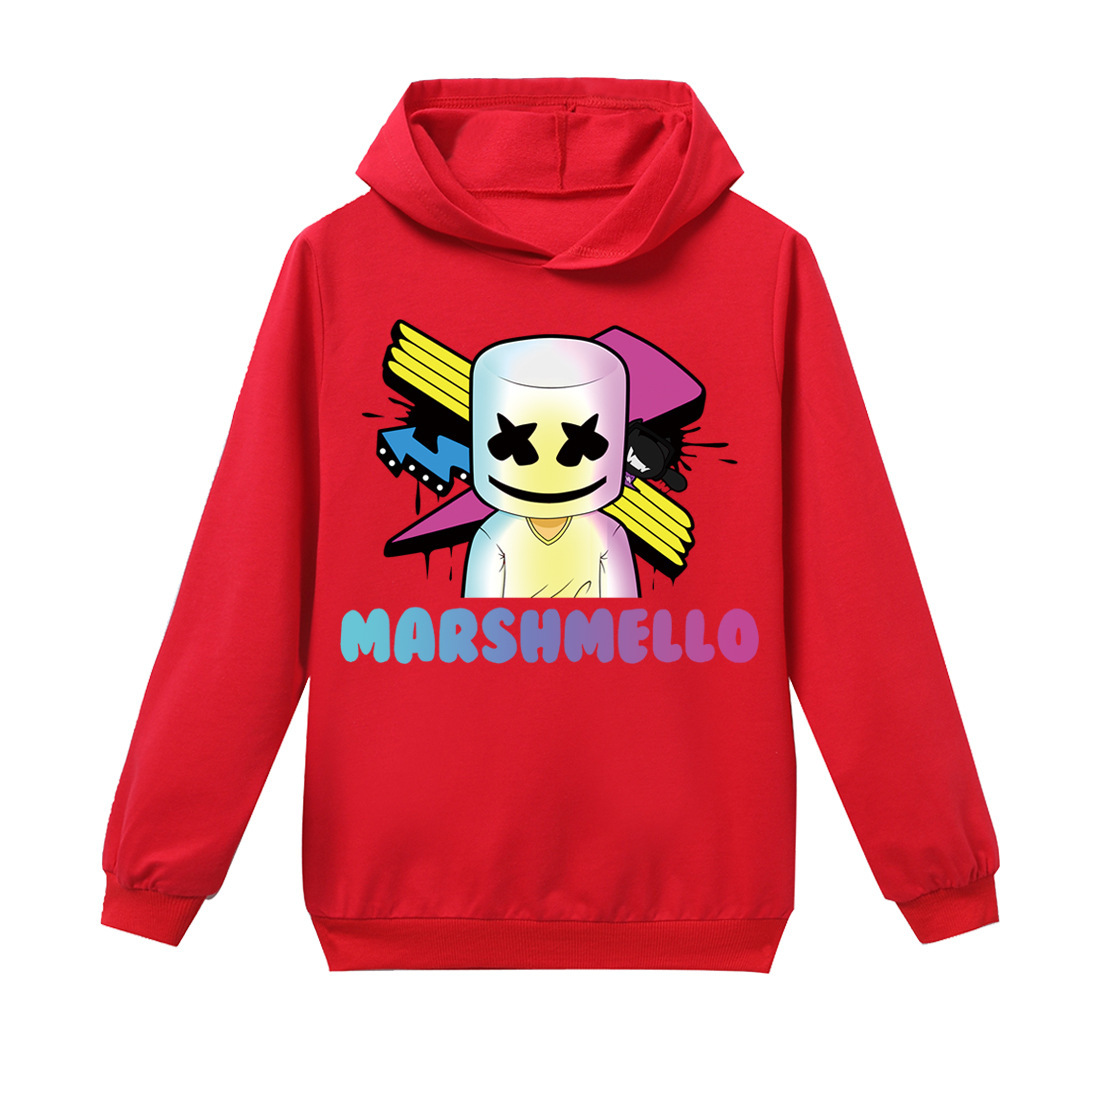 Every Day New Arrival! Marshmello DJ Music Kids Hoodie Large Childrenswear H929